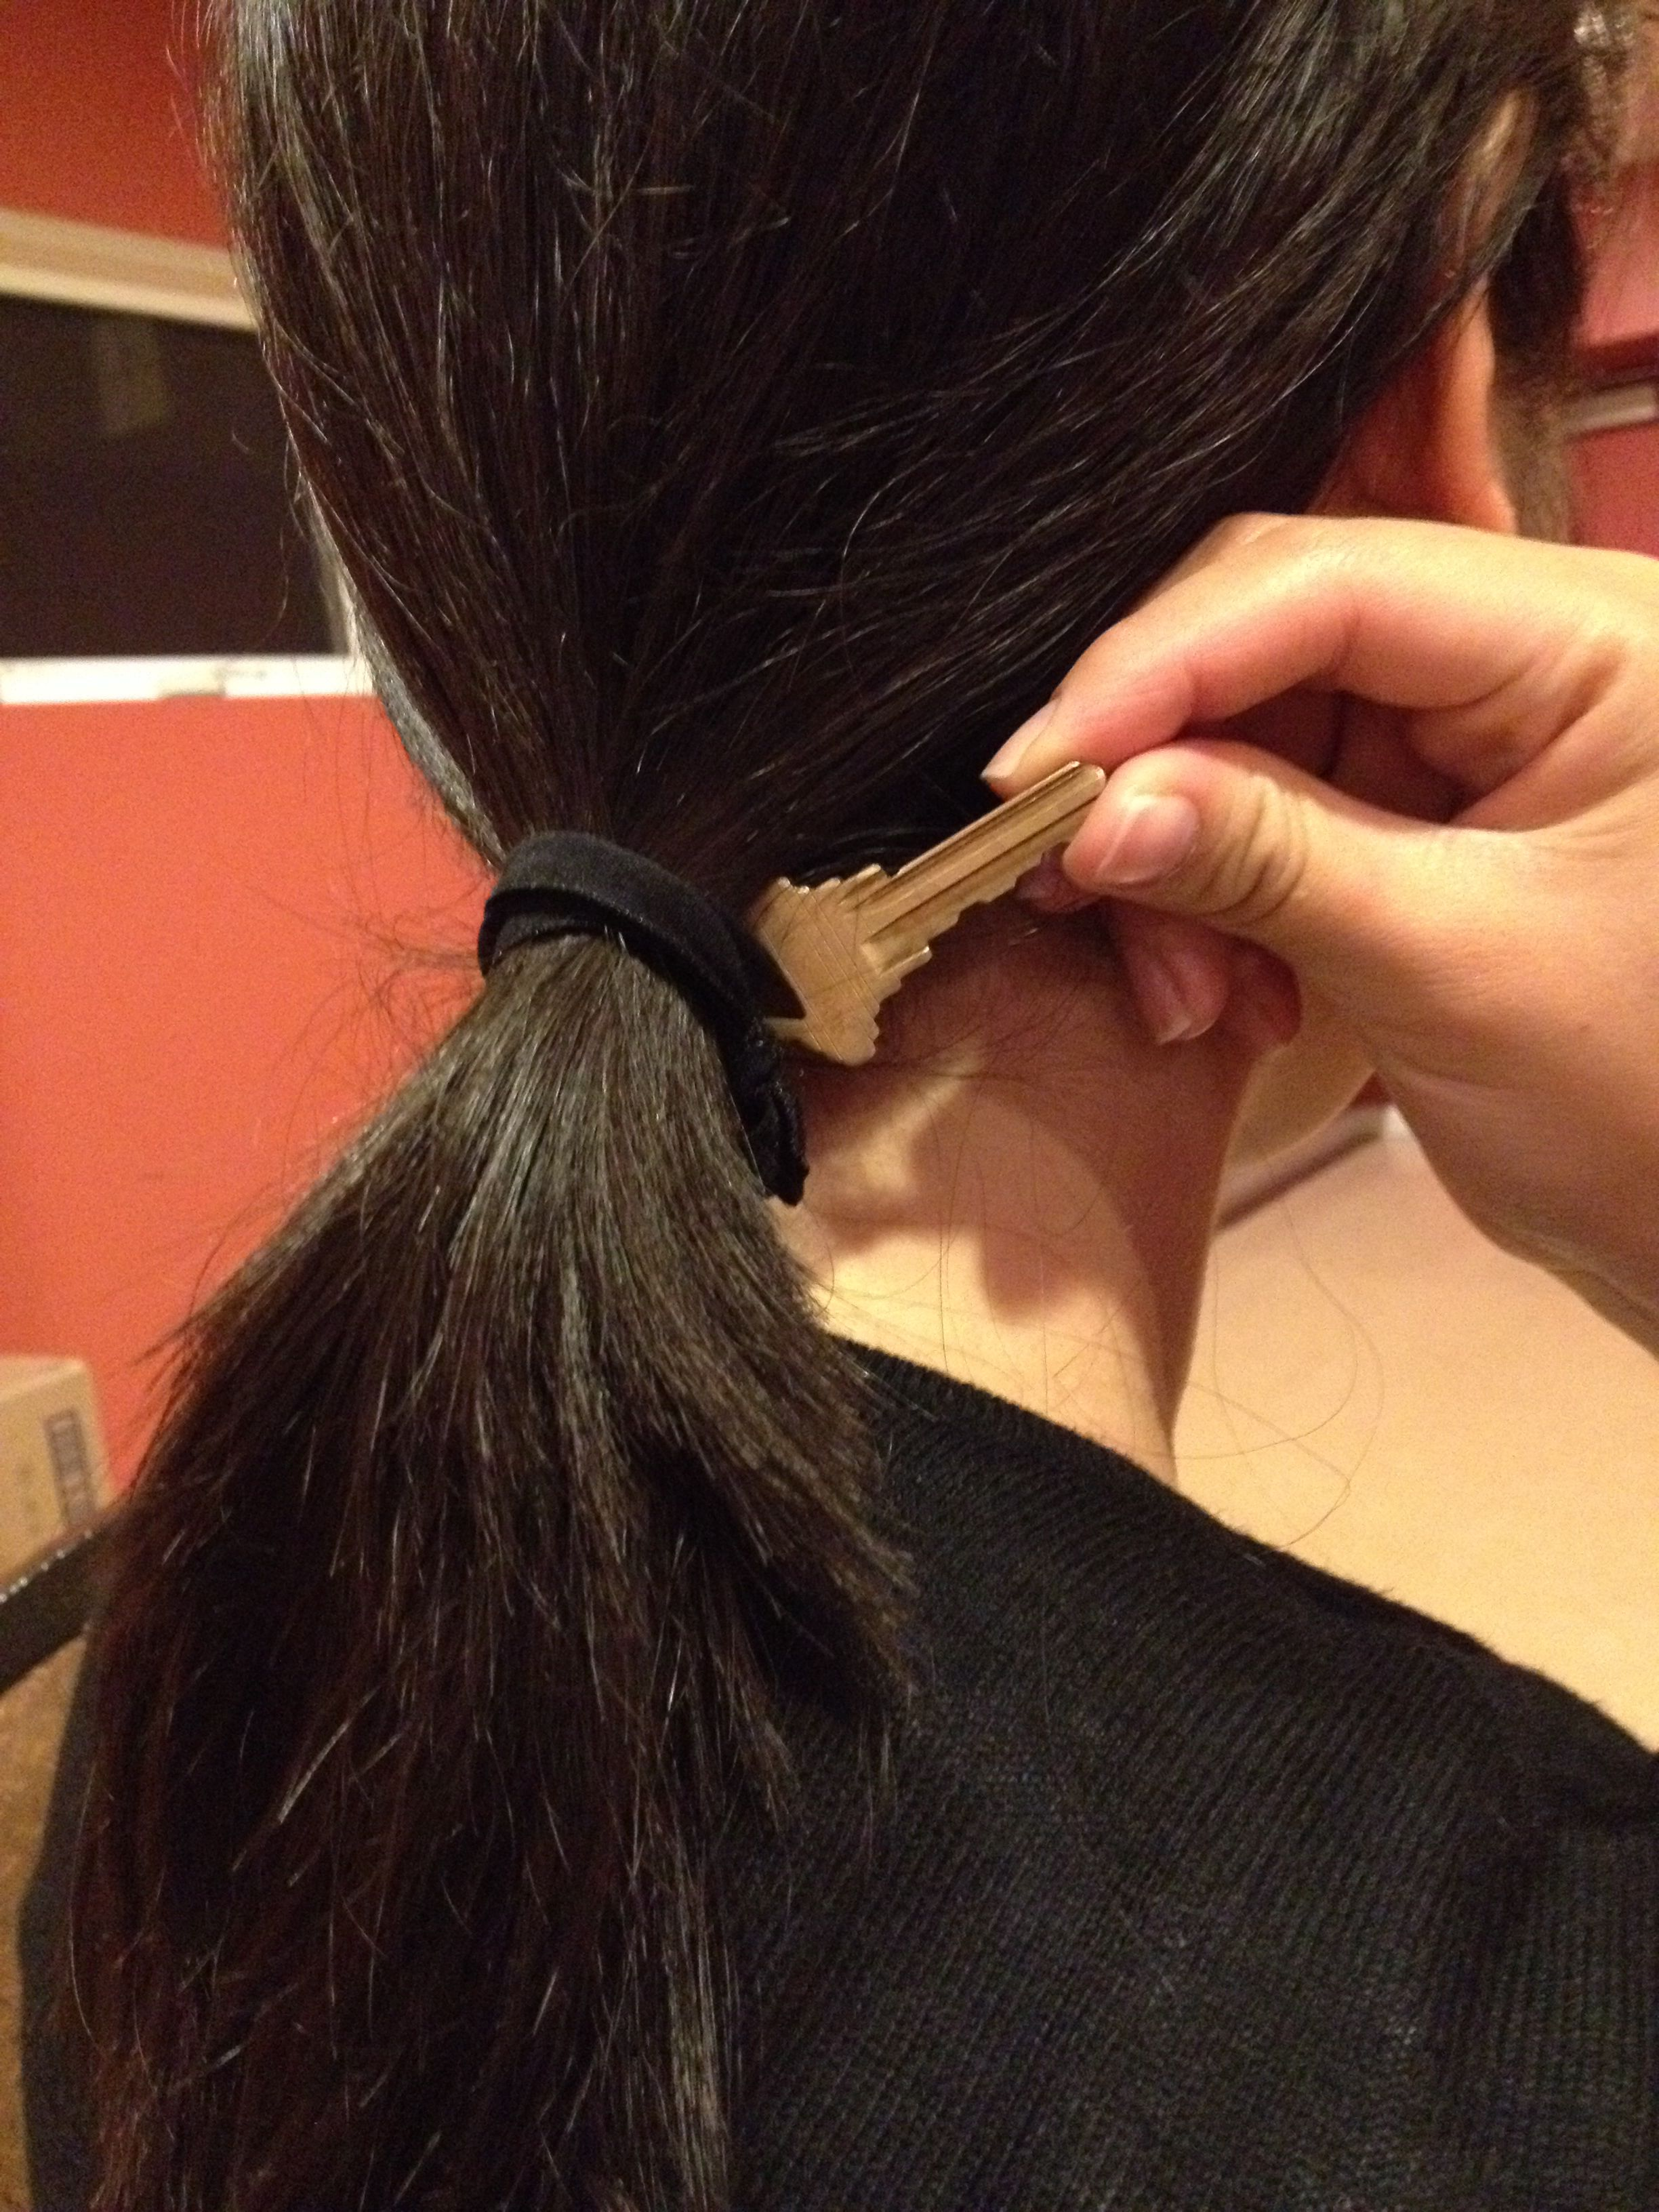 Can't afford to loose your room key? Put it on your hair tie.